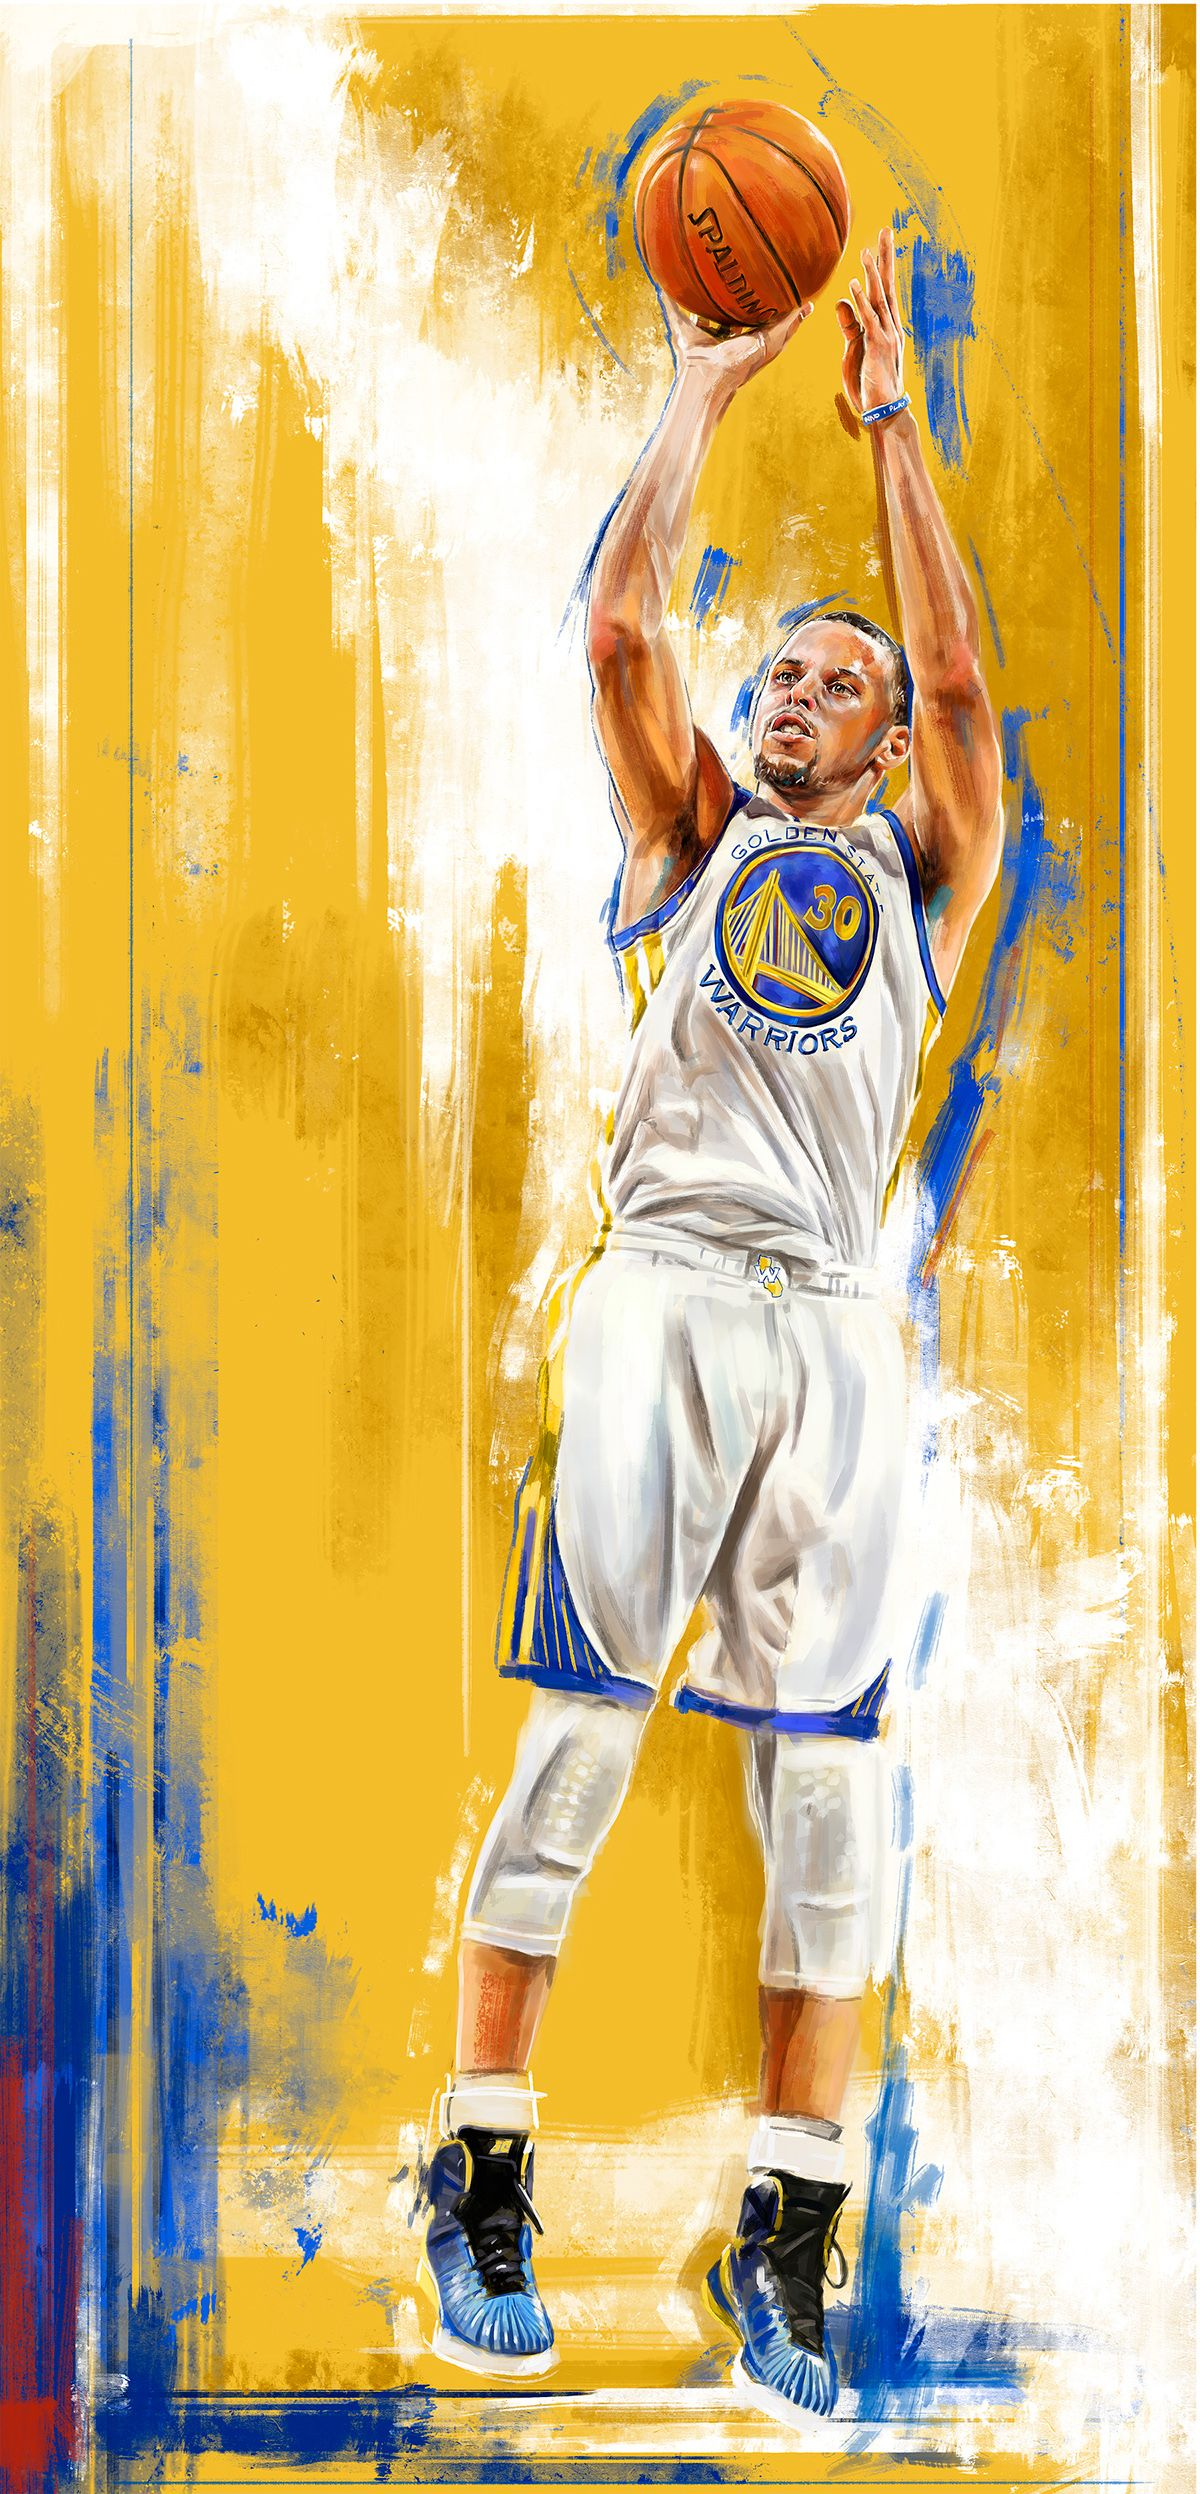 Self initiated illustrative series for the 2015 NBA Playoffs ...